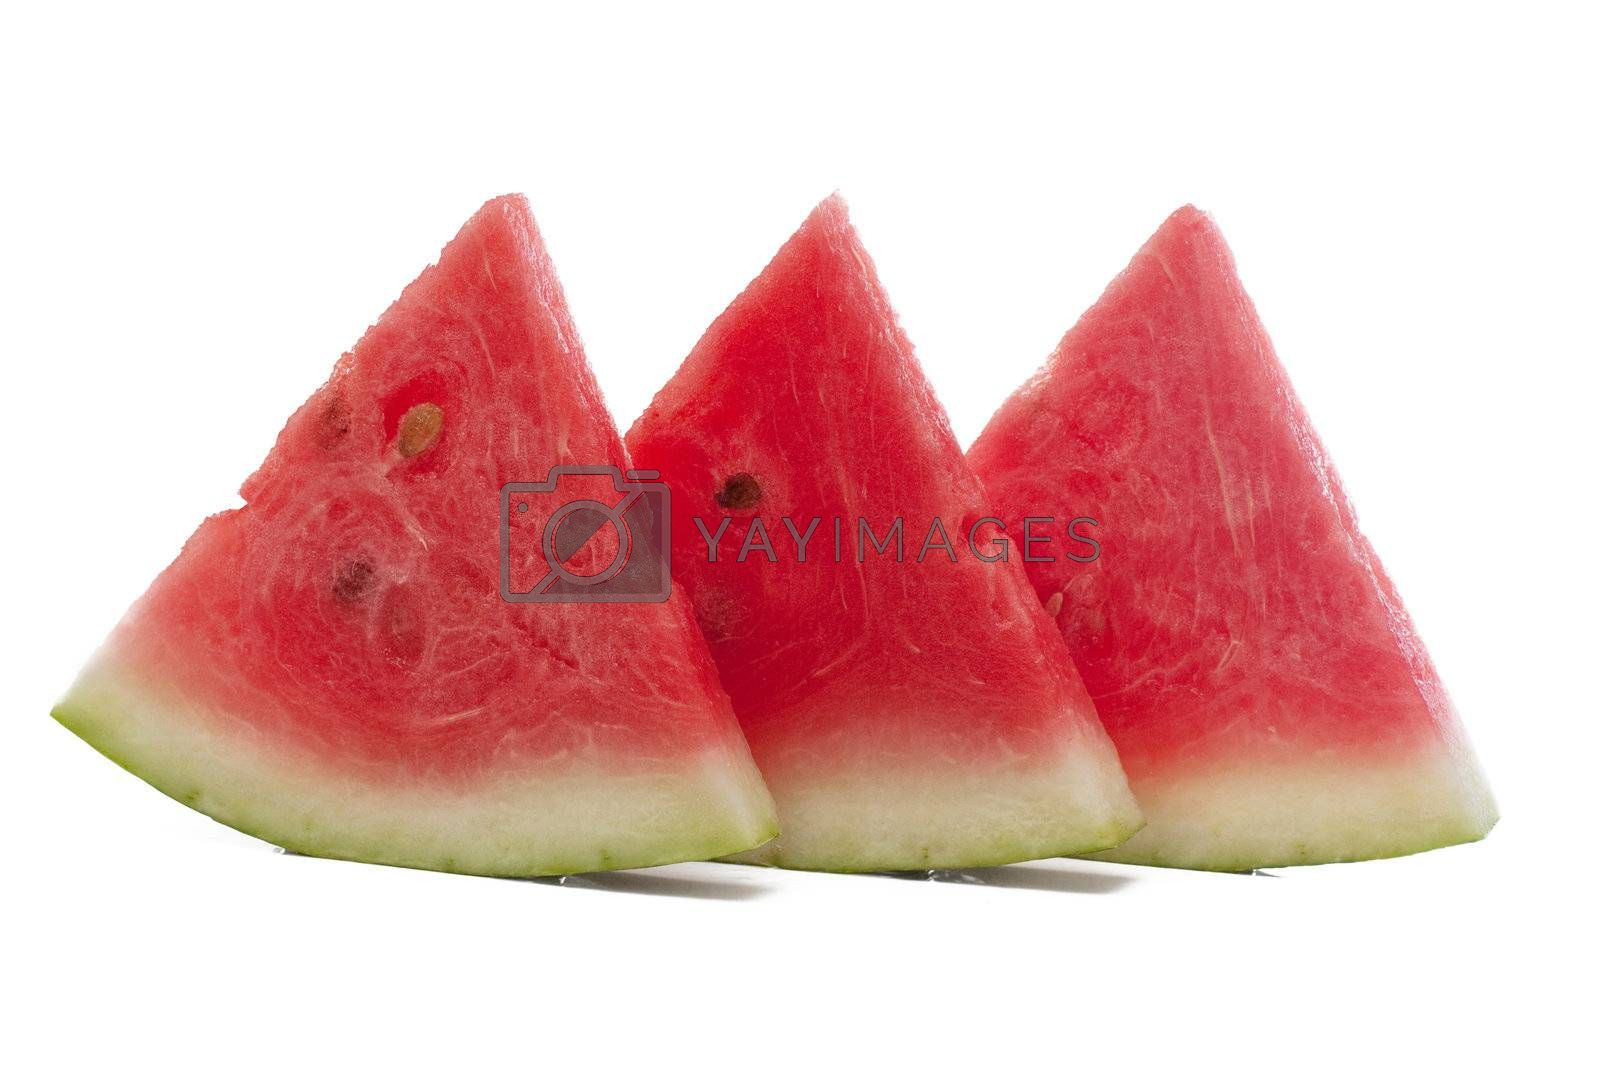 Royalty free image of Fresh slices of watermelon by AGorohov